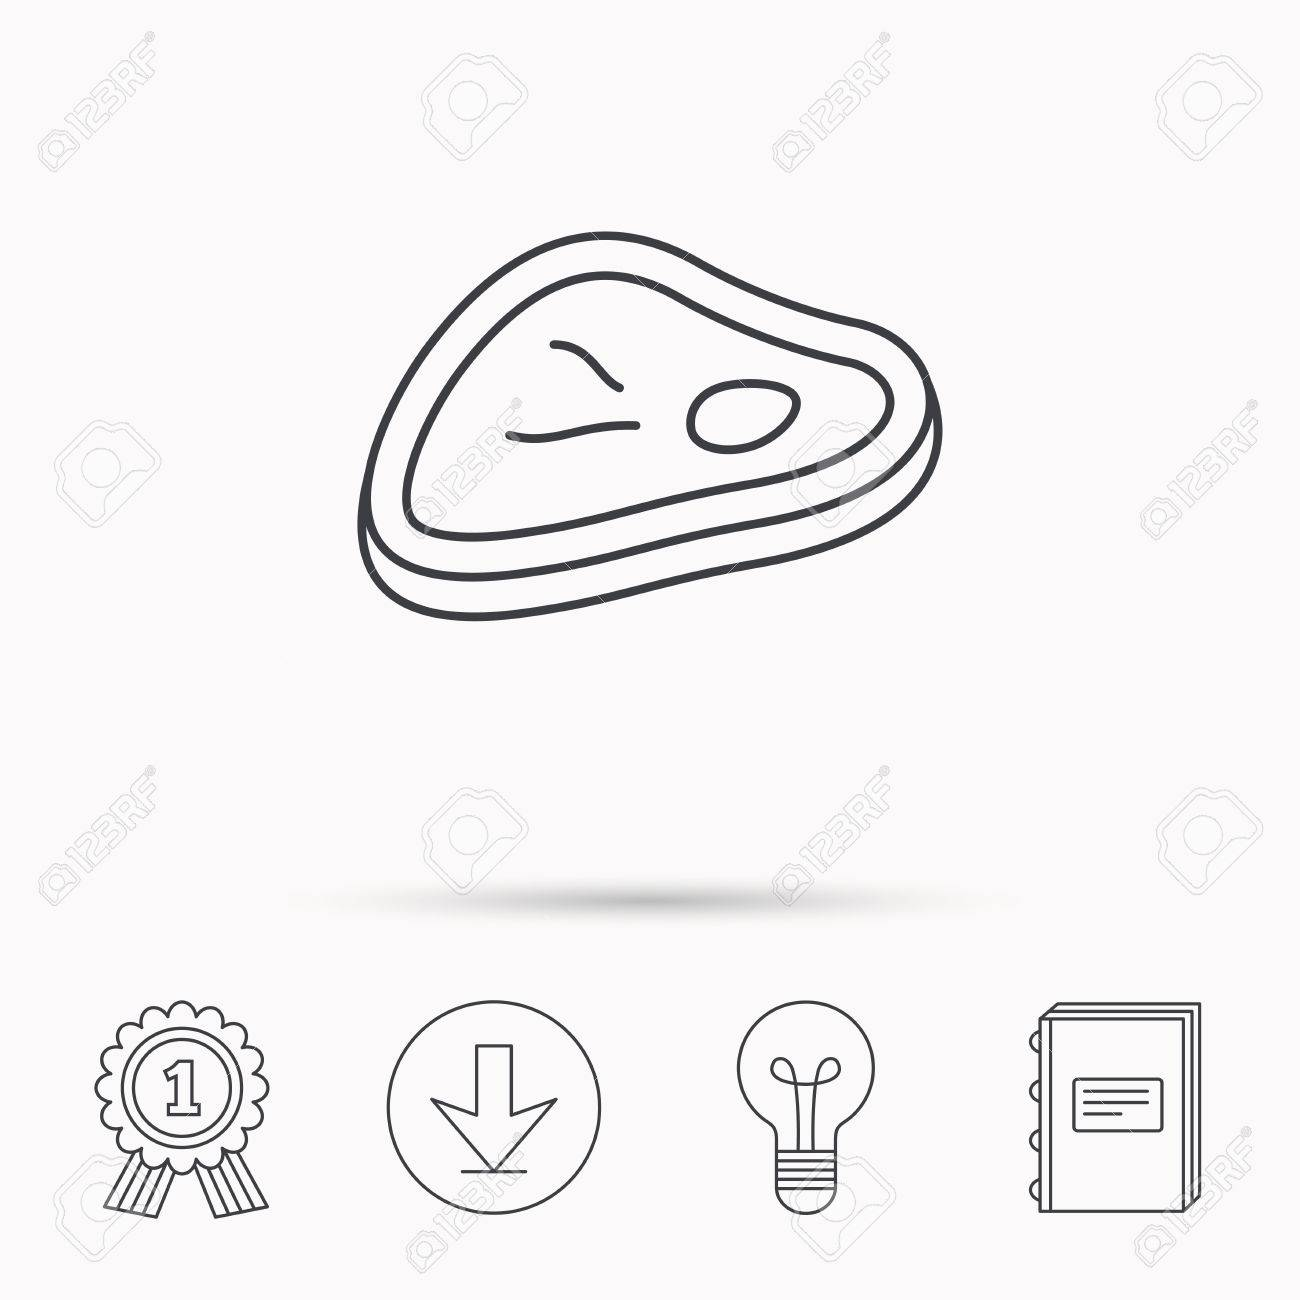 Meat icon  Beef steak sign  Barbecue meat slice symbol  Download